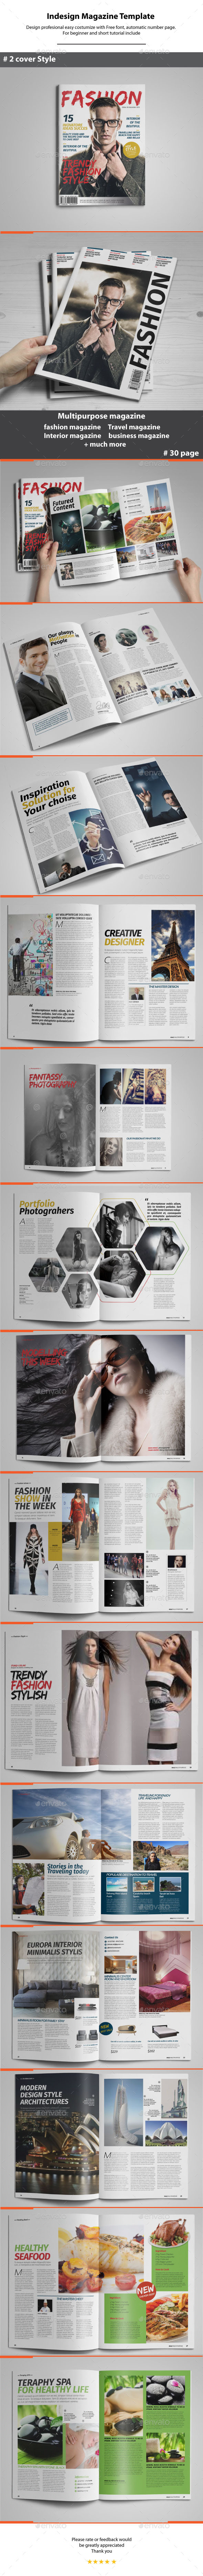 GraphicRiver Indesign Magazine Template 11421618